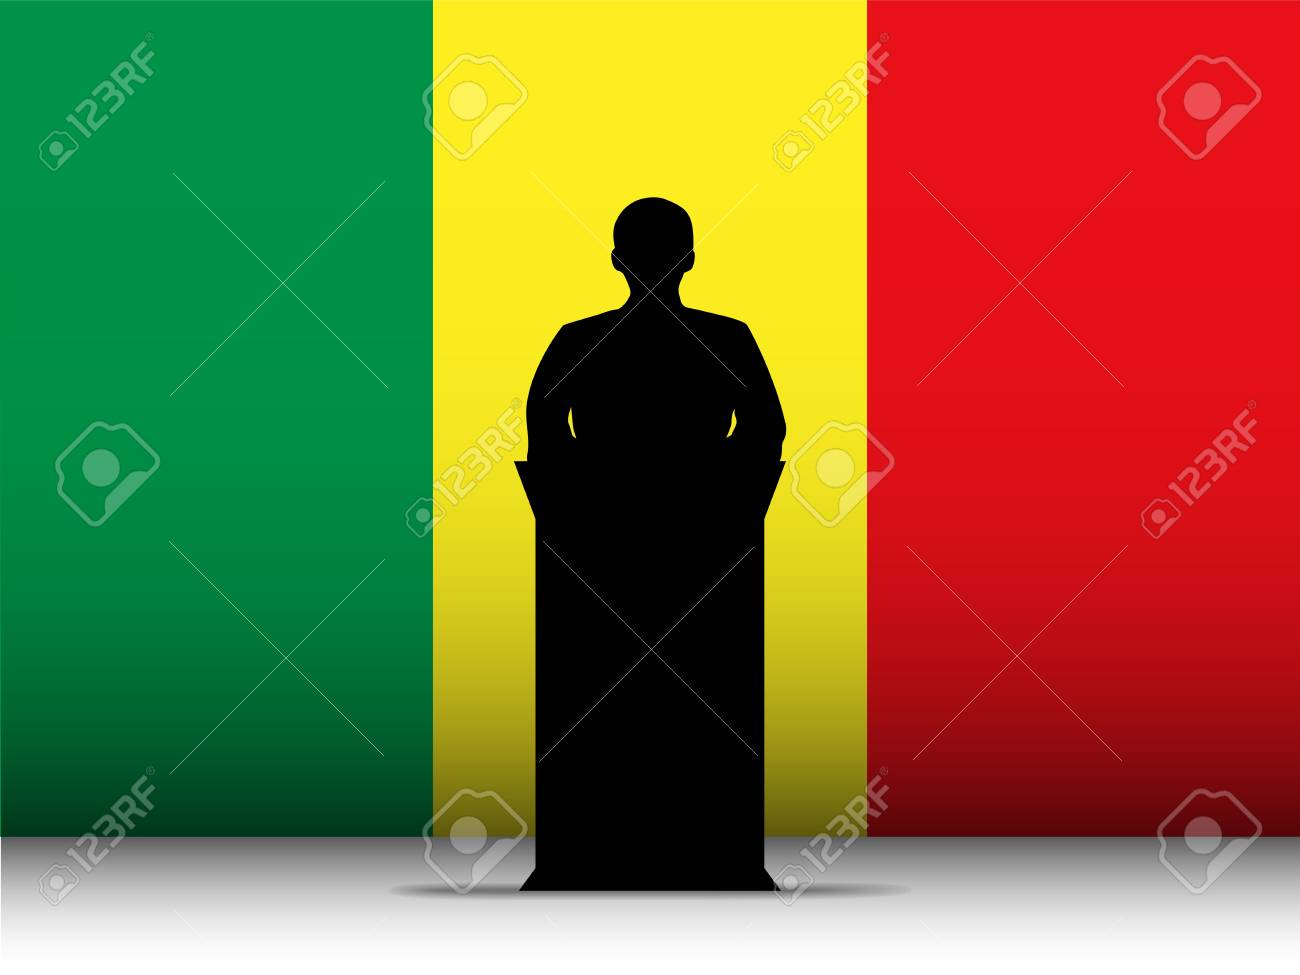 Vector - Mali  Speech Tribune Silhouette with Flag Background Stock Vector - 17302875